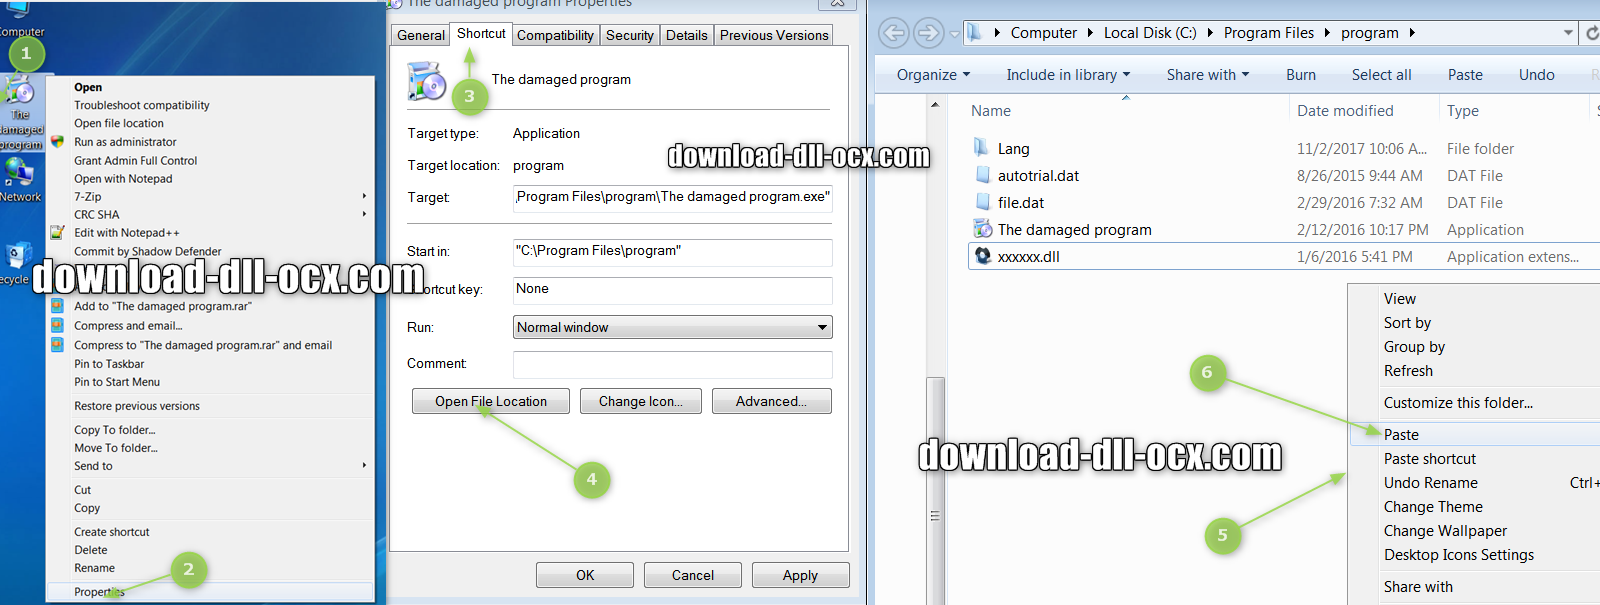 how to install qedwipes.dll file? for fix missing